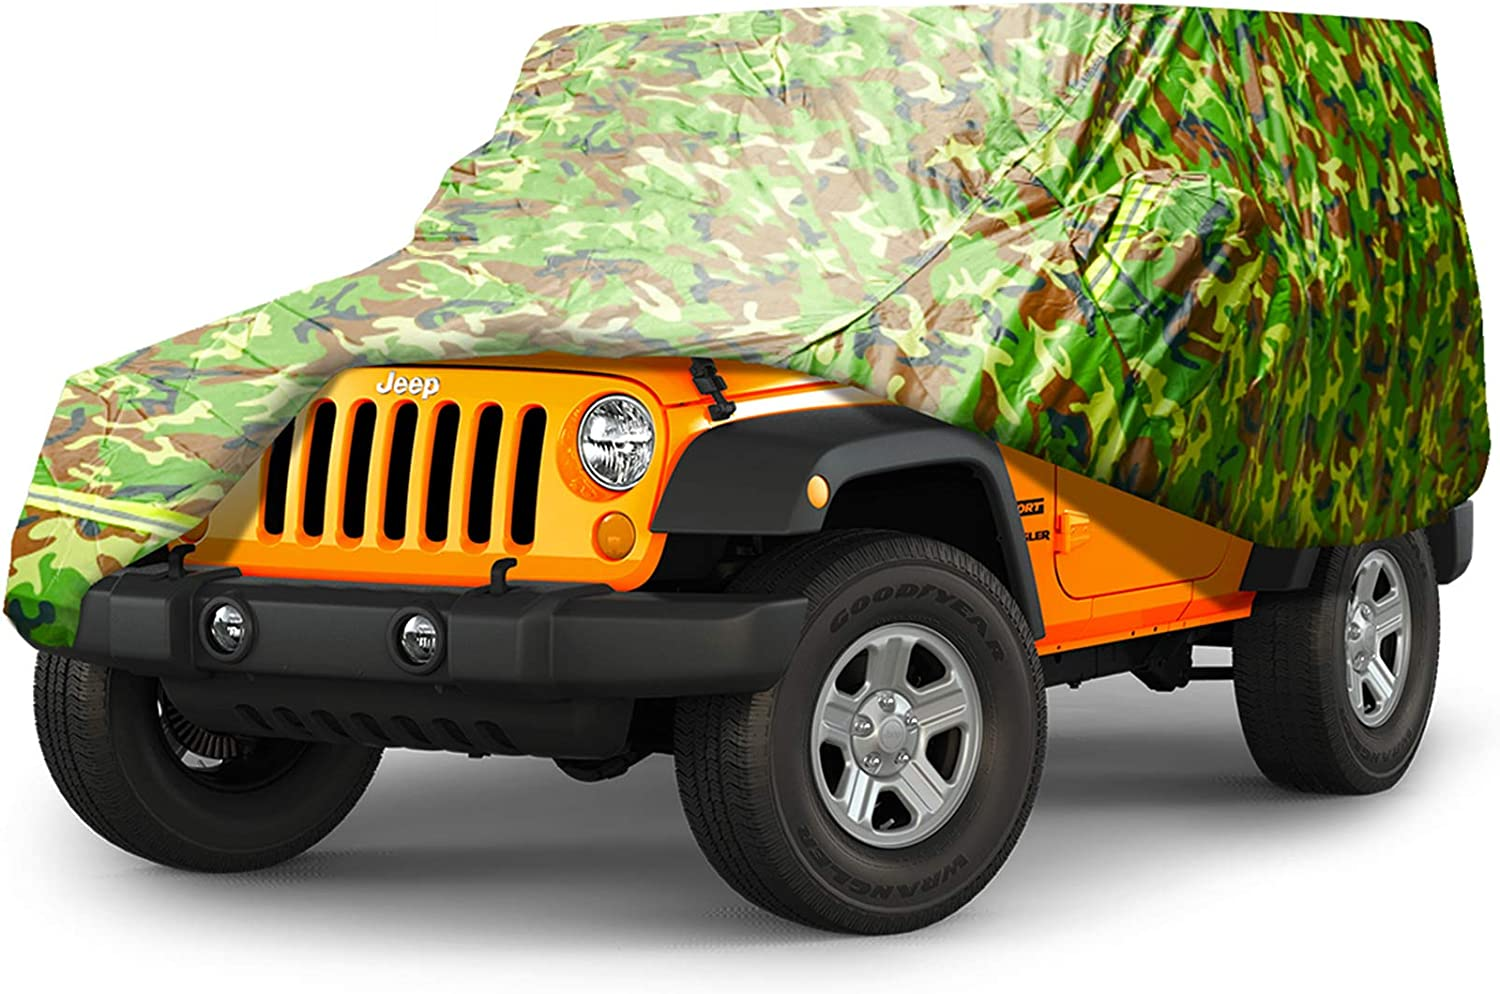 JL YJ BORDAN Jeep Car Cover All Weather Protection Waterproof SUV Cover Fit for Jeep Wrangler 1987-2019 JK CJ TJ 2 Doors